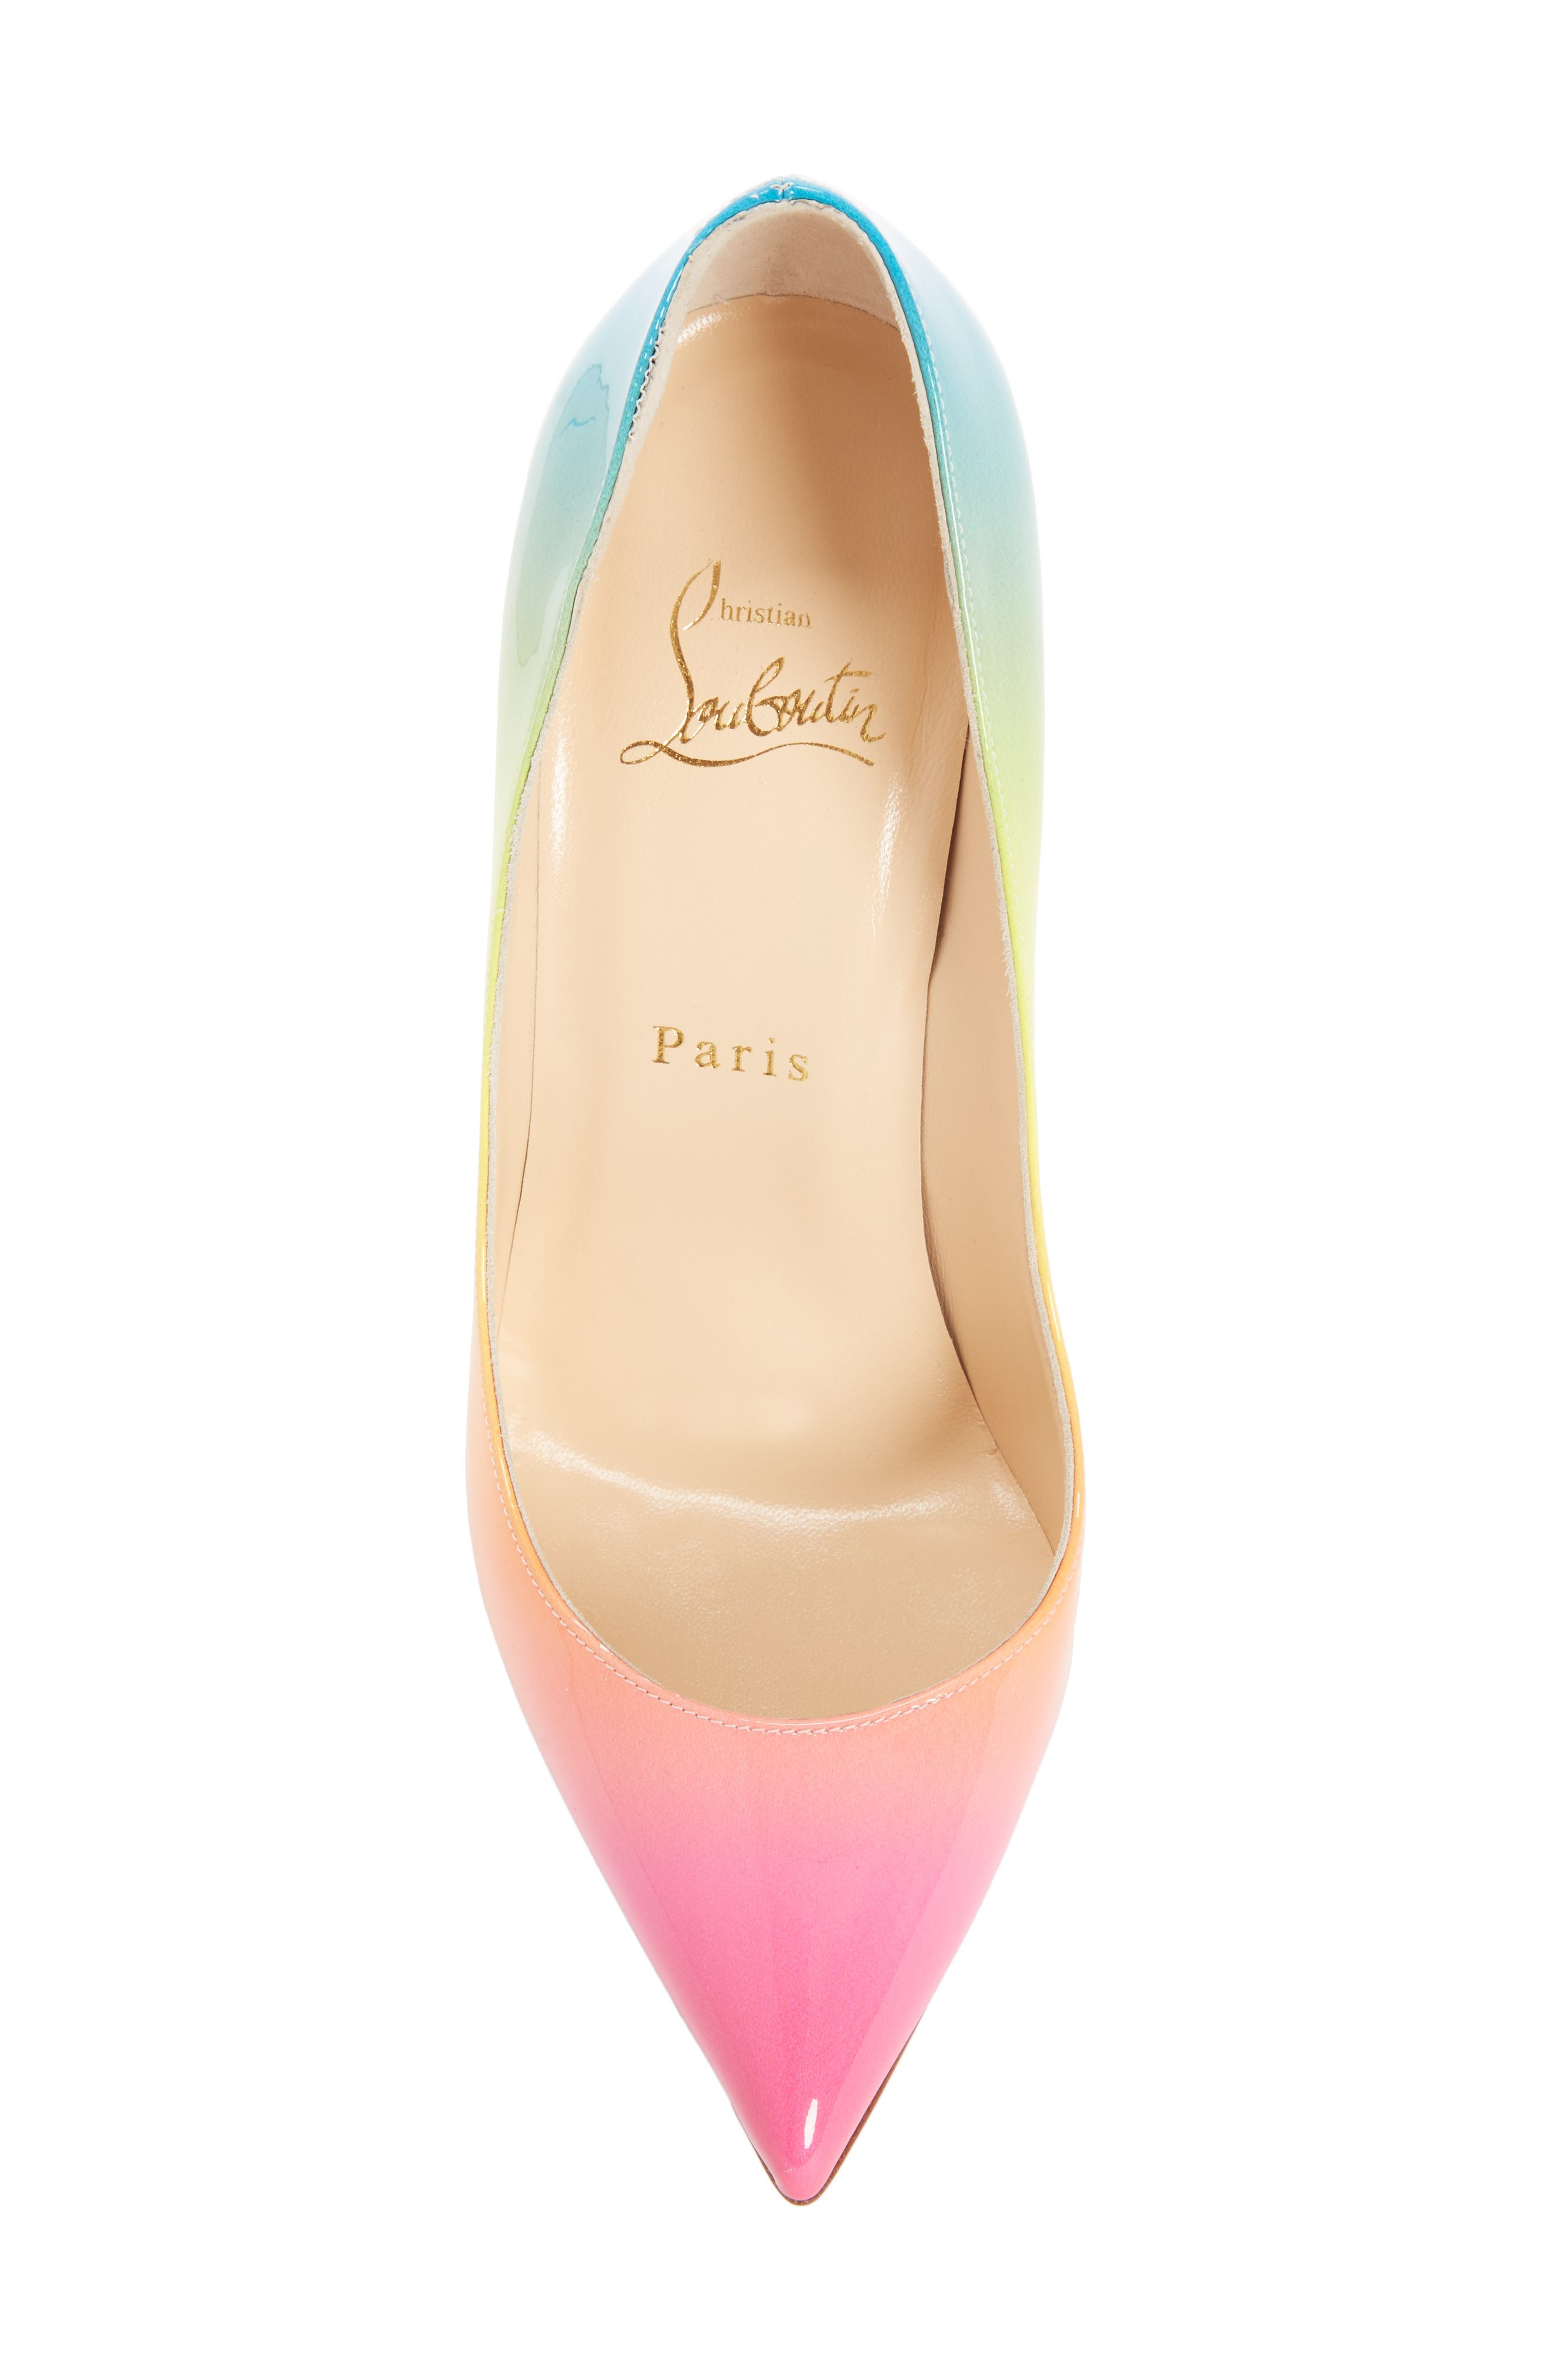 CHRISTIAN LOUBOUTIN PIGALLE FOLLIES 100MM OMBRE PATENT RED SOLE PUMPS, GOLD